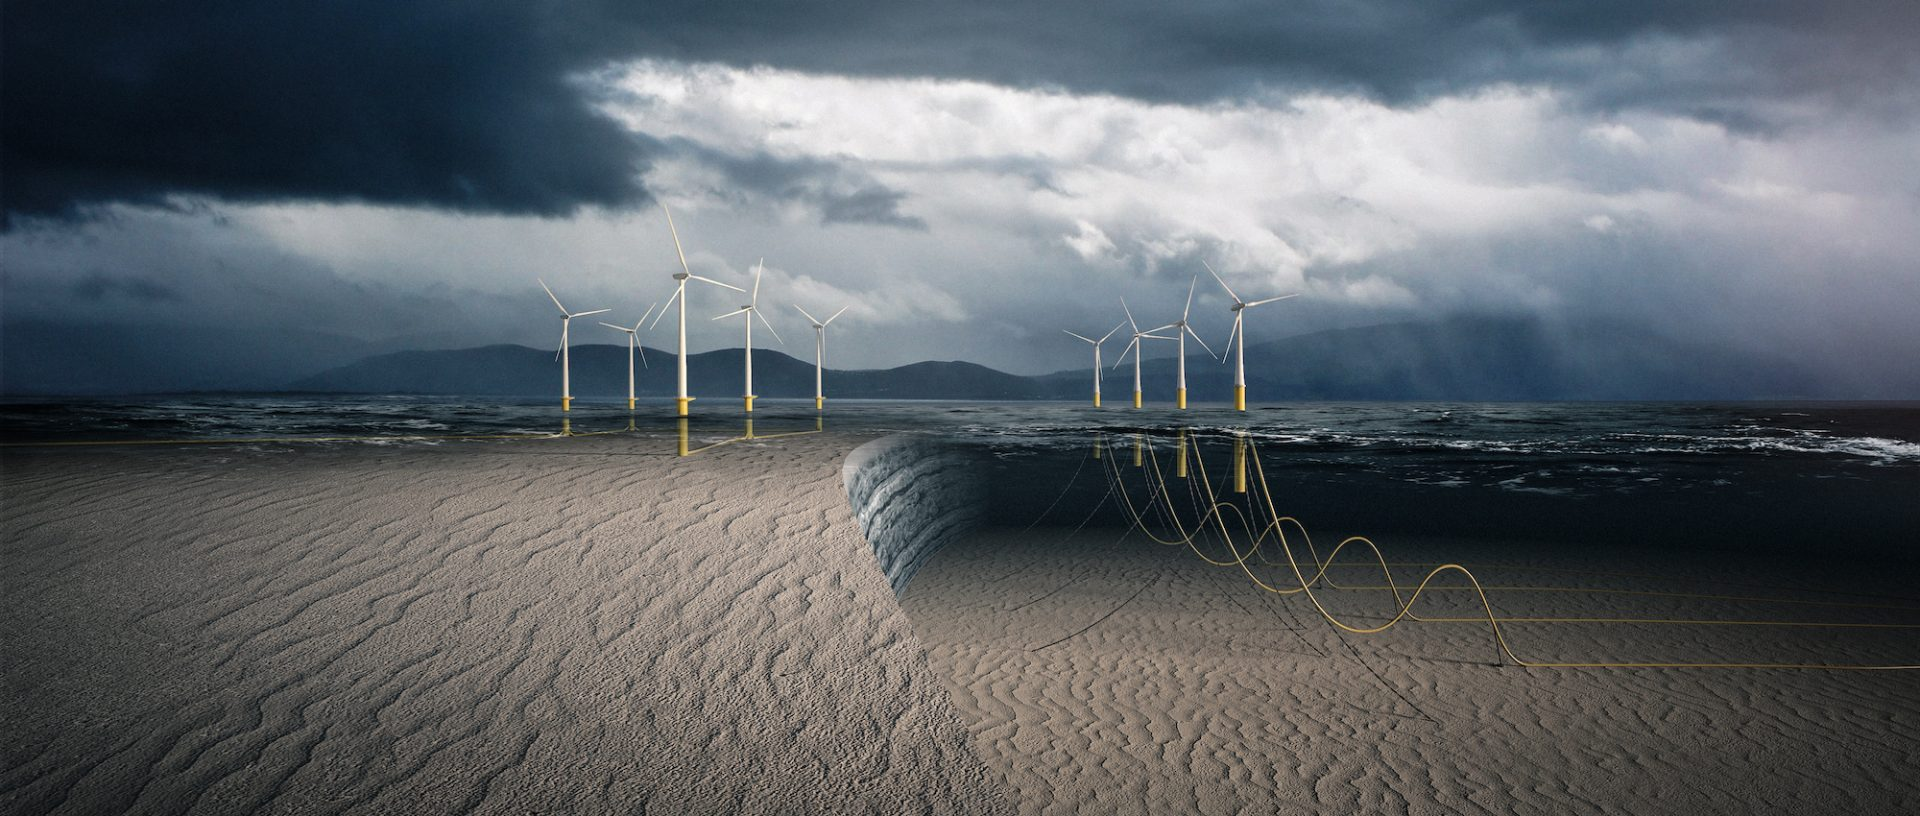 offshore wind we understand the challenges of oil and gas assets